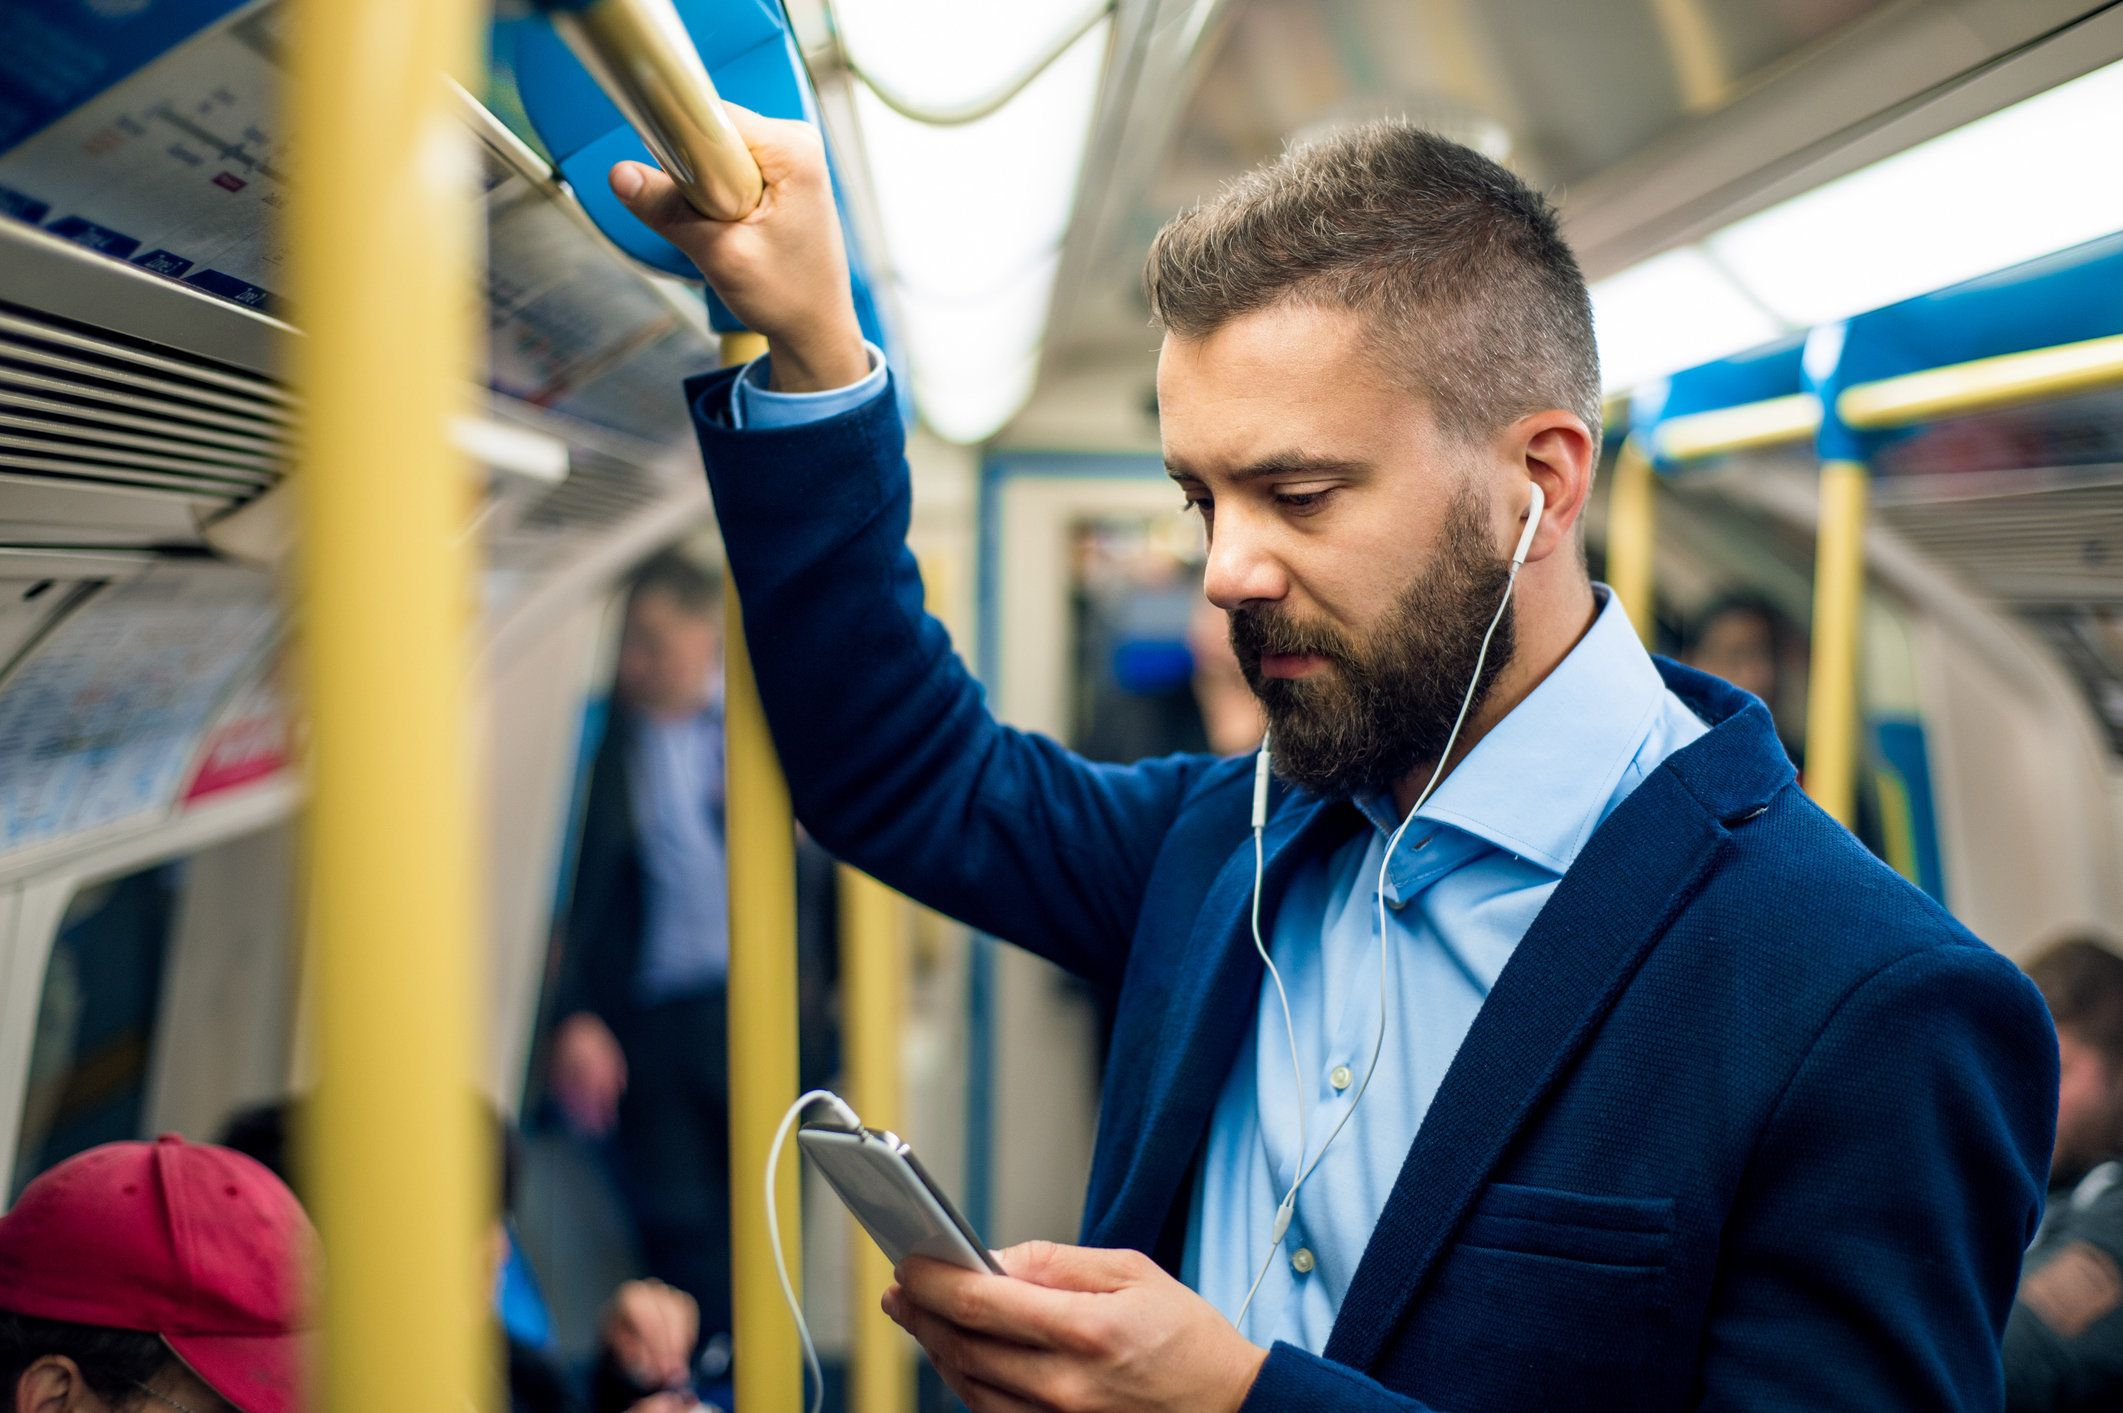 How Commuting For More Than 30 Minutes Could Be Damaging Your